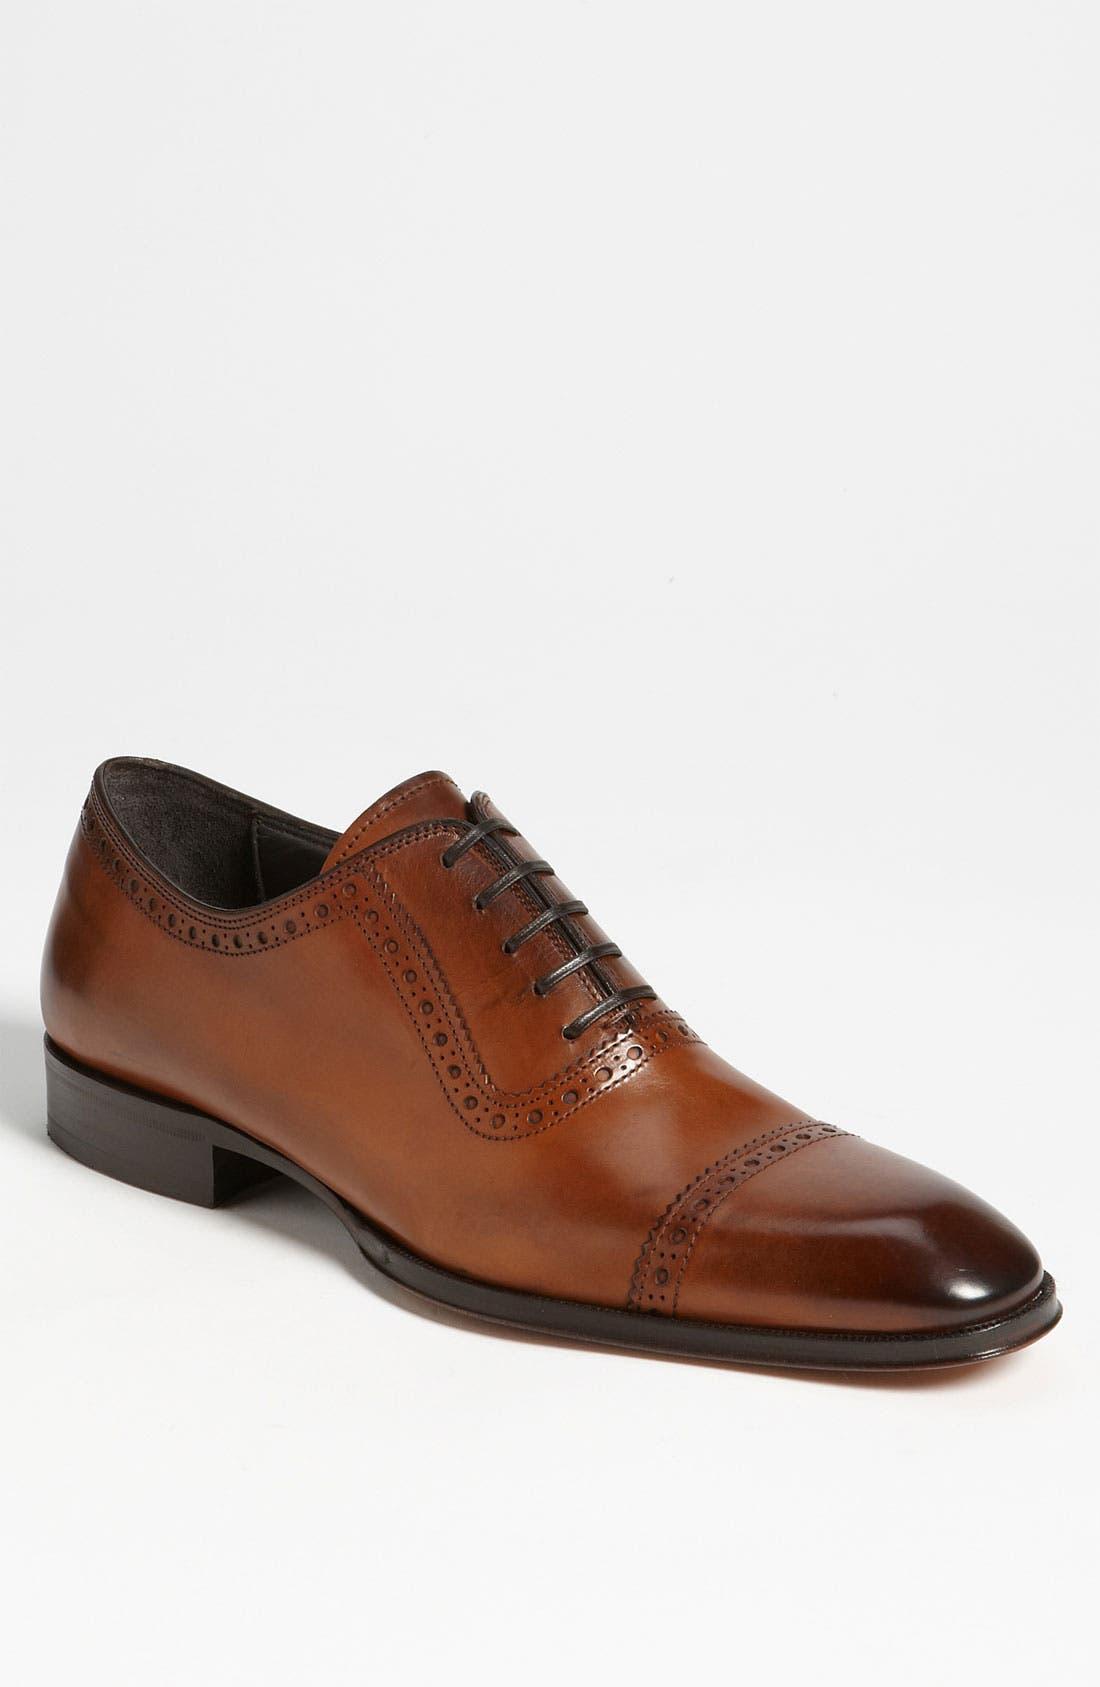 Alternate Image 1 Selected - To Boot New York 'Warwick' Cap Toe Oxford